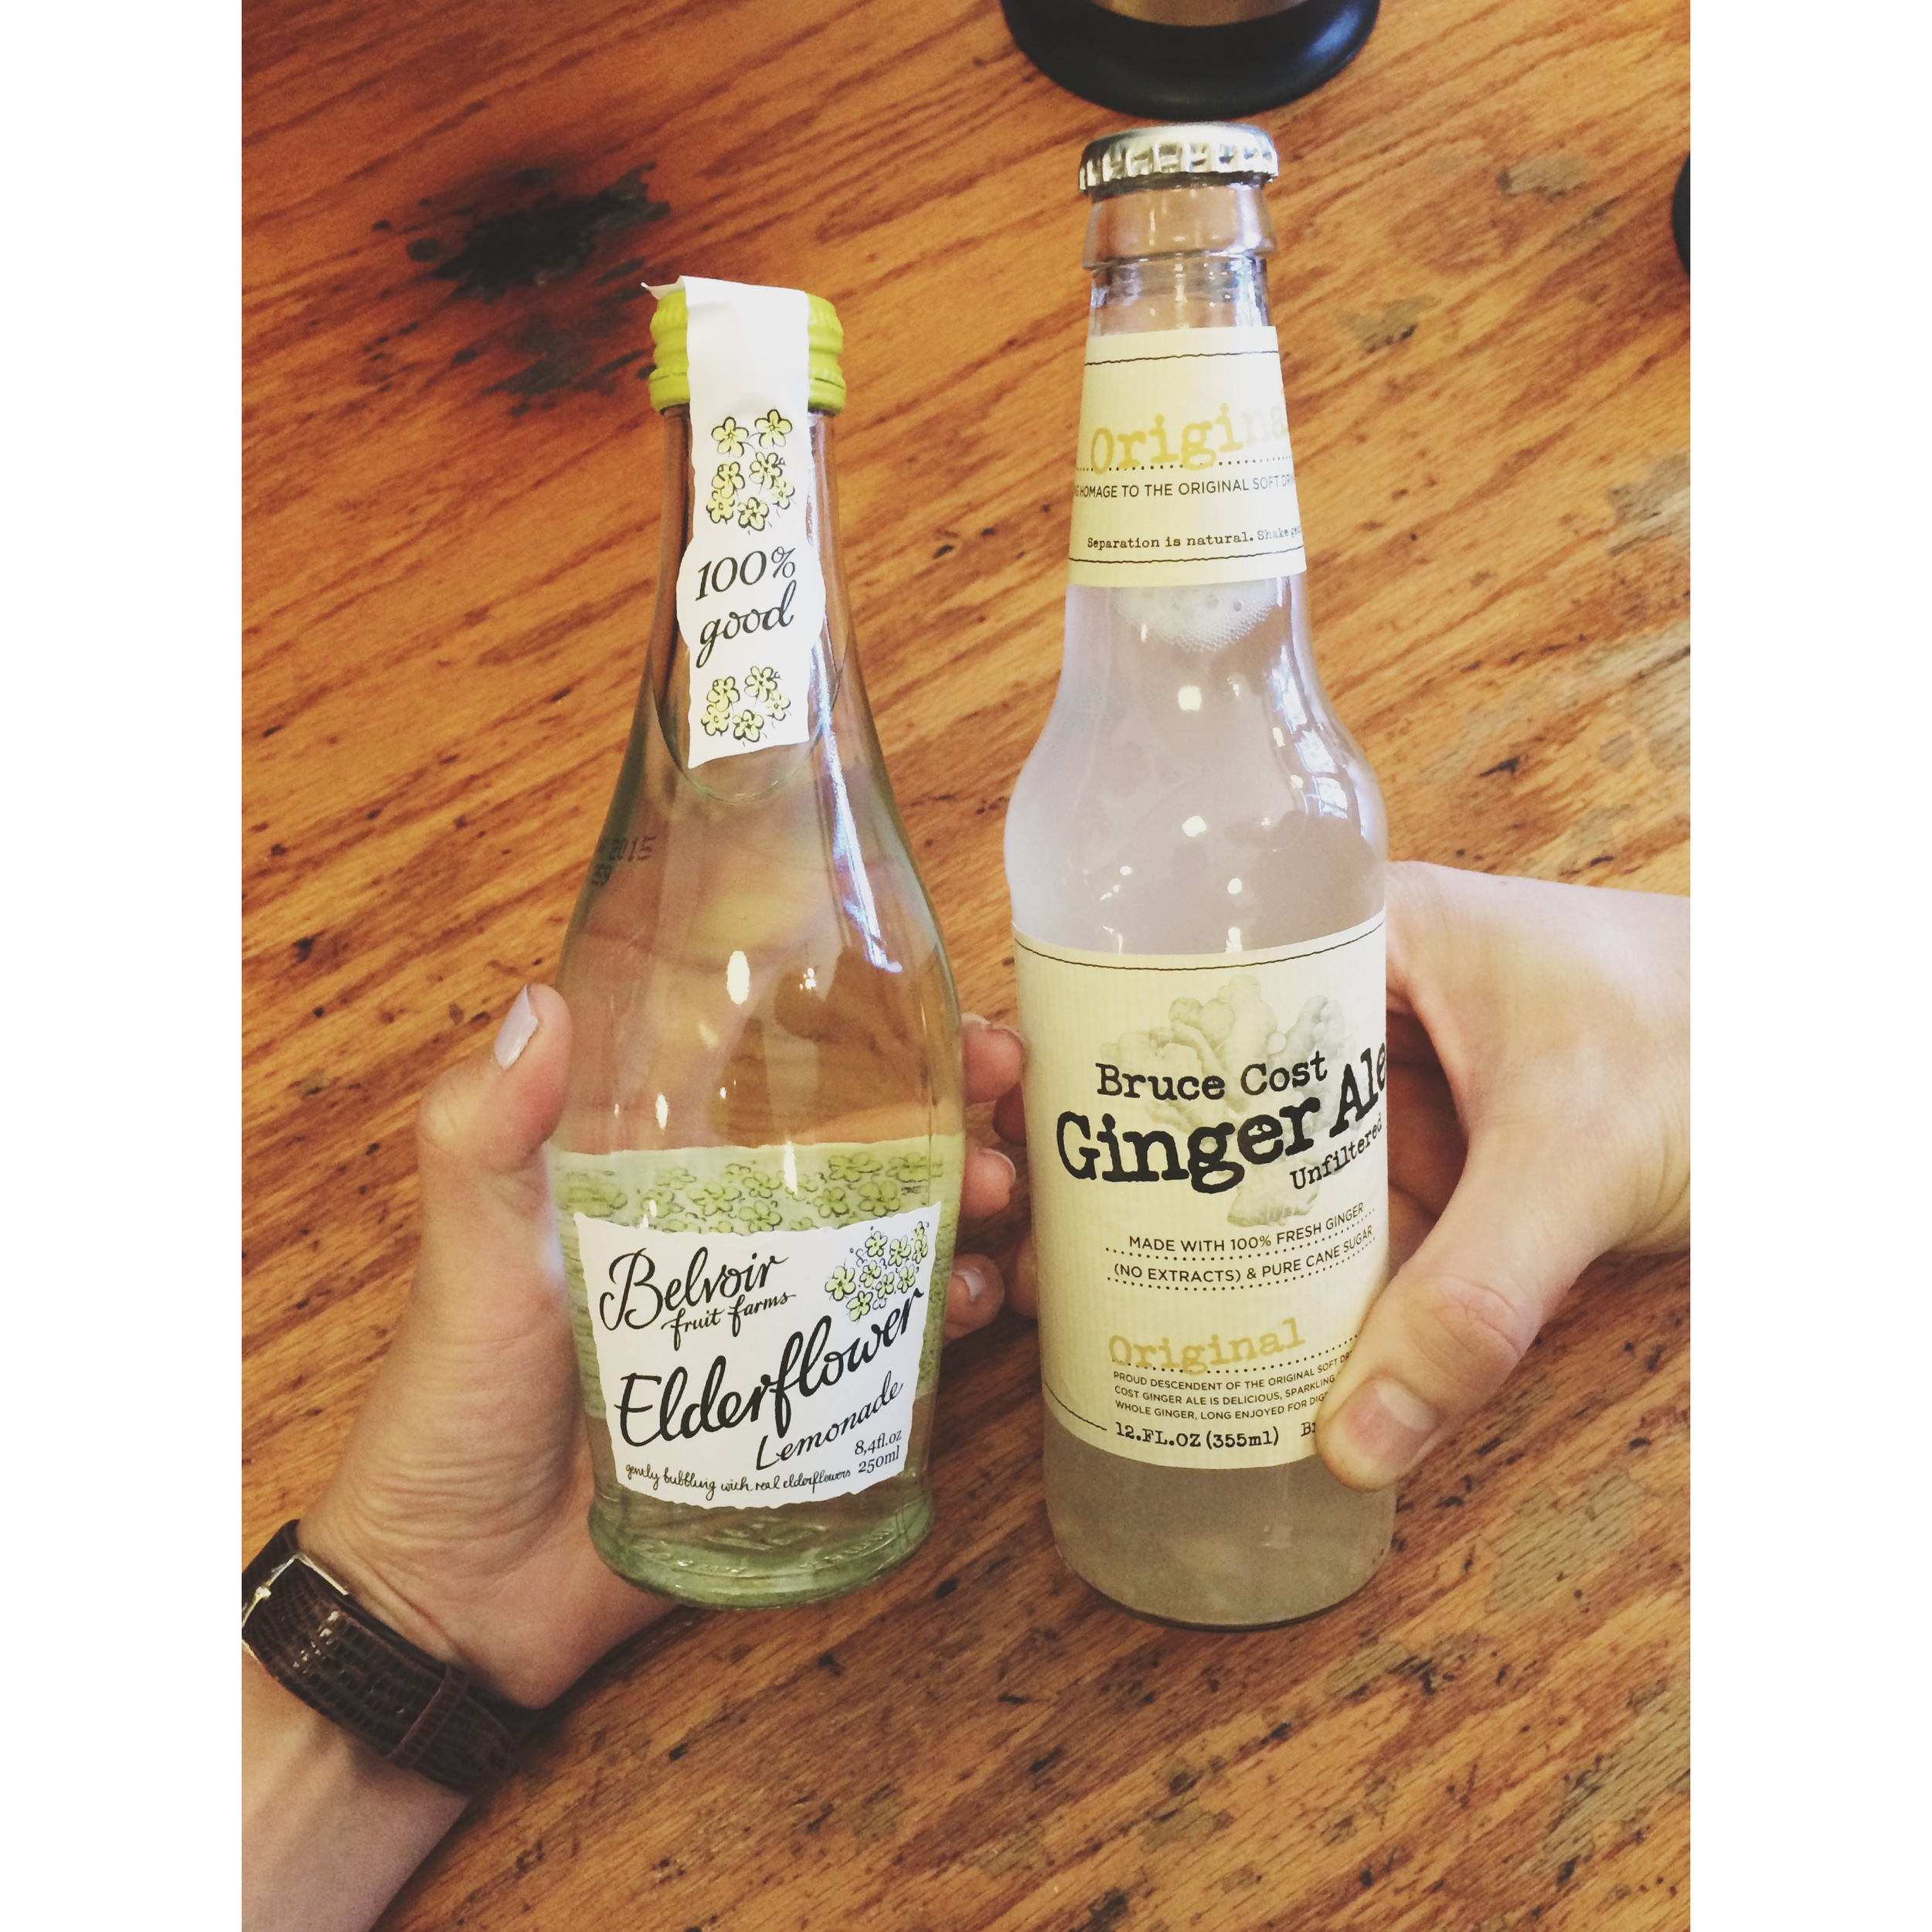 Elderflower Lemonade, taste like lychee, thumbs up.